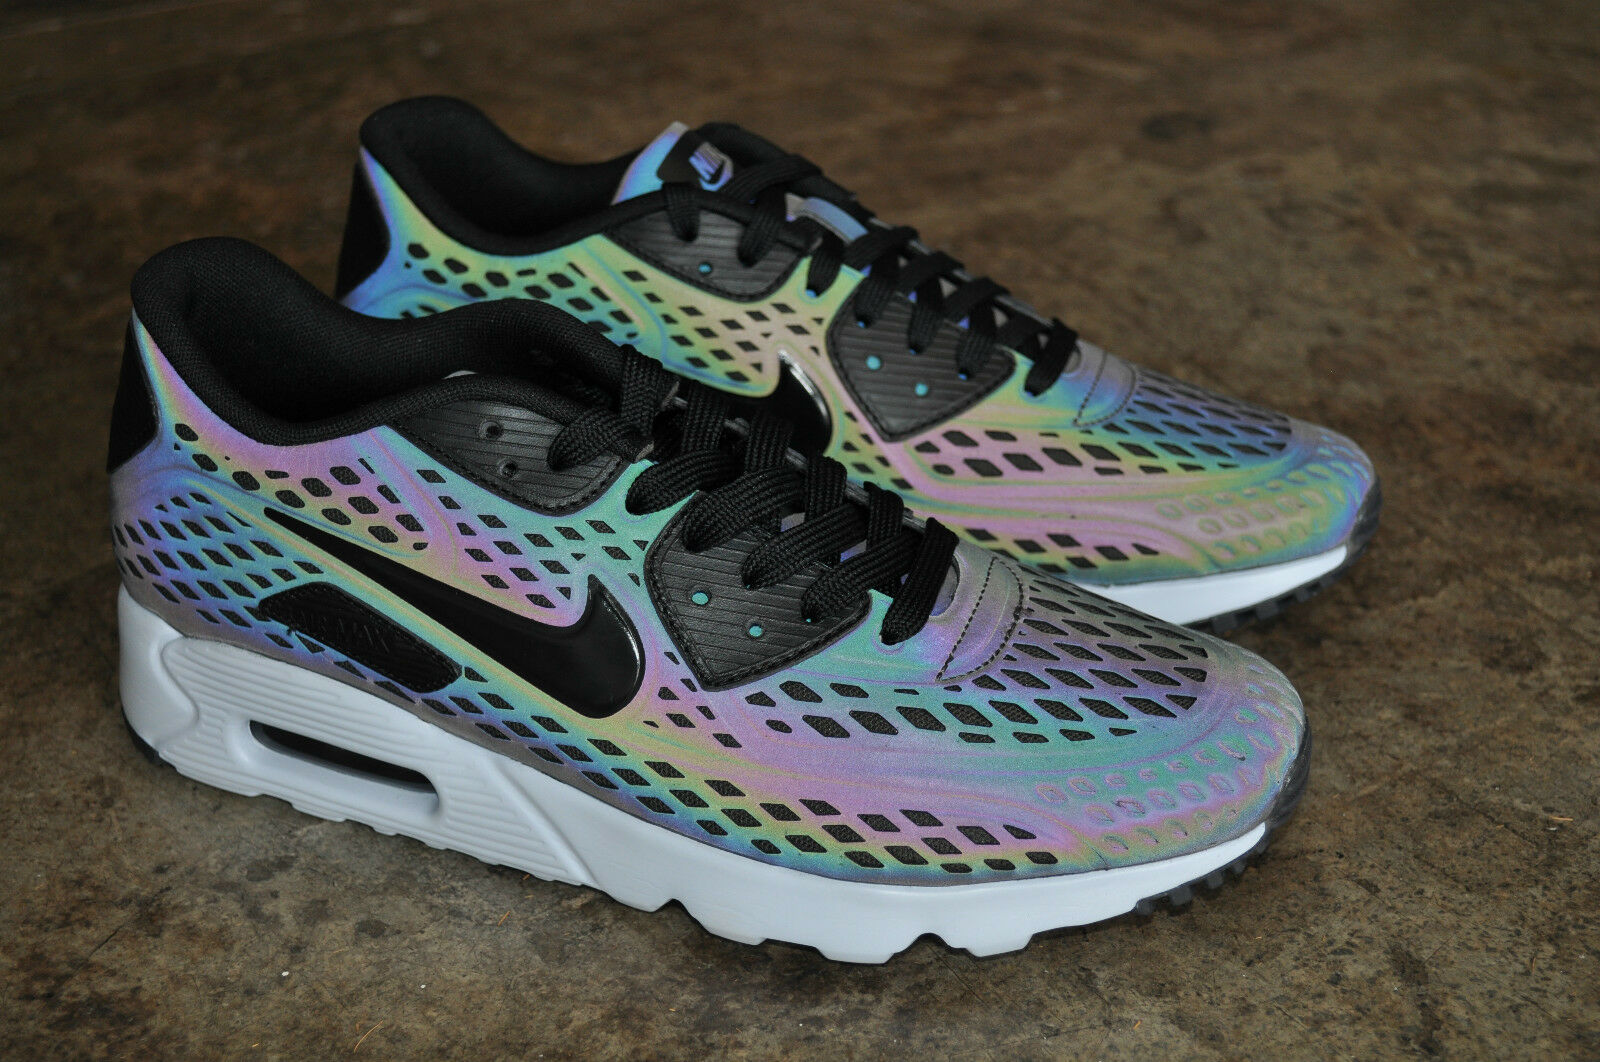 Nike Air Max 90 Ultra Moire Holographic-Deep Holographic-Deep Holographic-Deep Peltro Nero-focena d50ef0